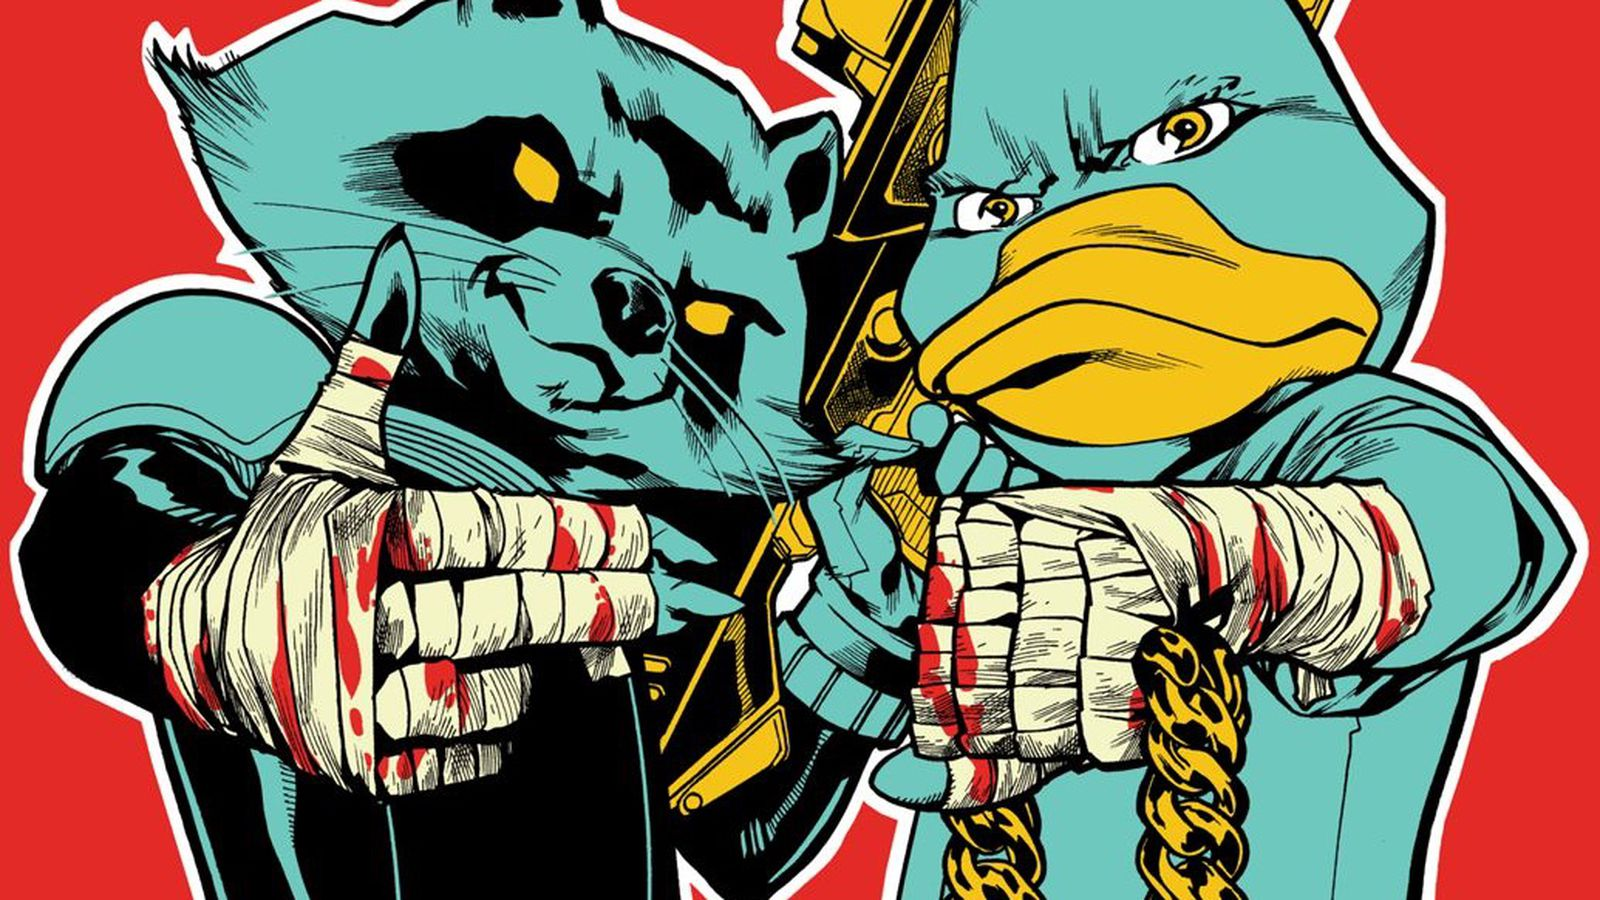 Dope Wallpaper Super Cars Marvel Celebrates Run The Jewels With New Howard The Duck